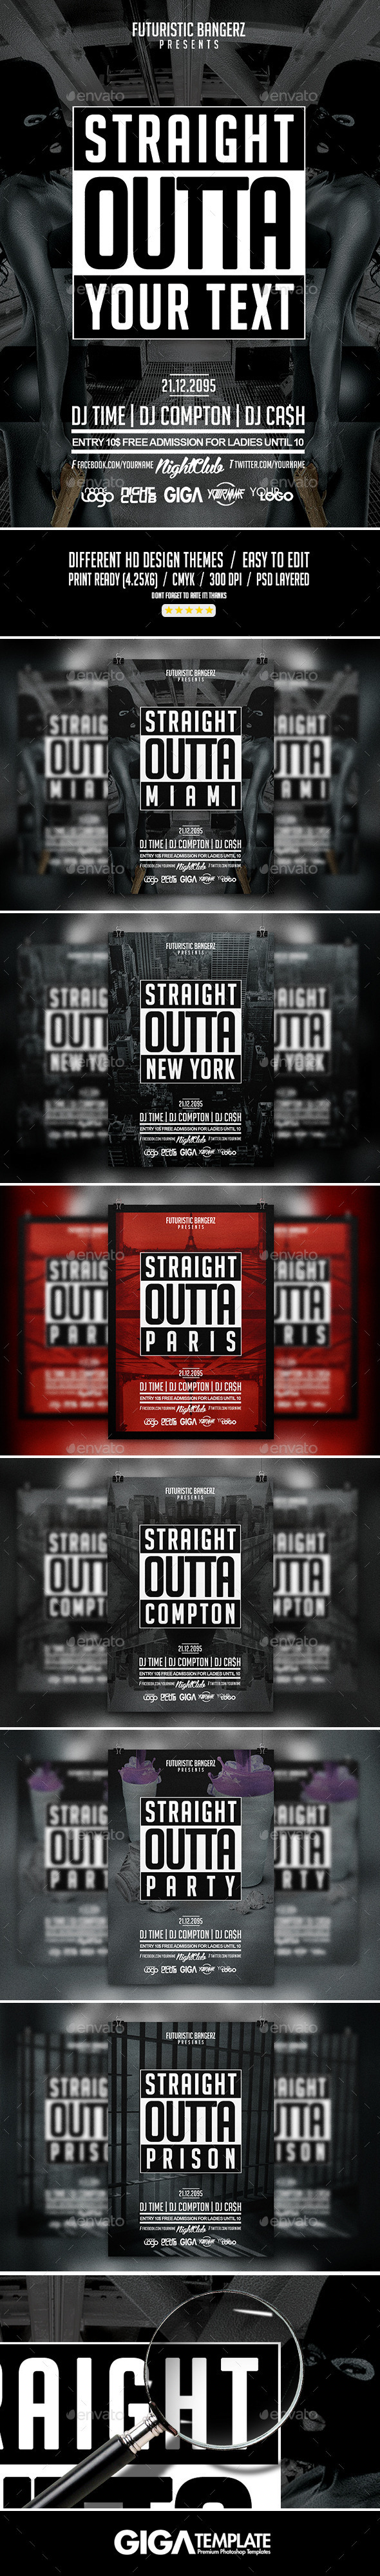 Straight Outta Party Hip Hop Flyer Psd Template On Behance